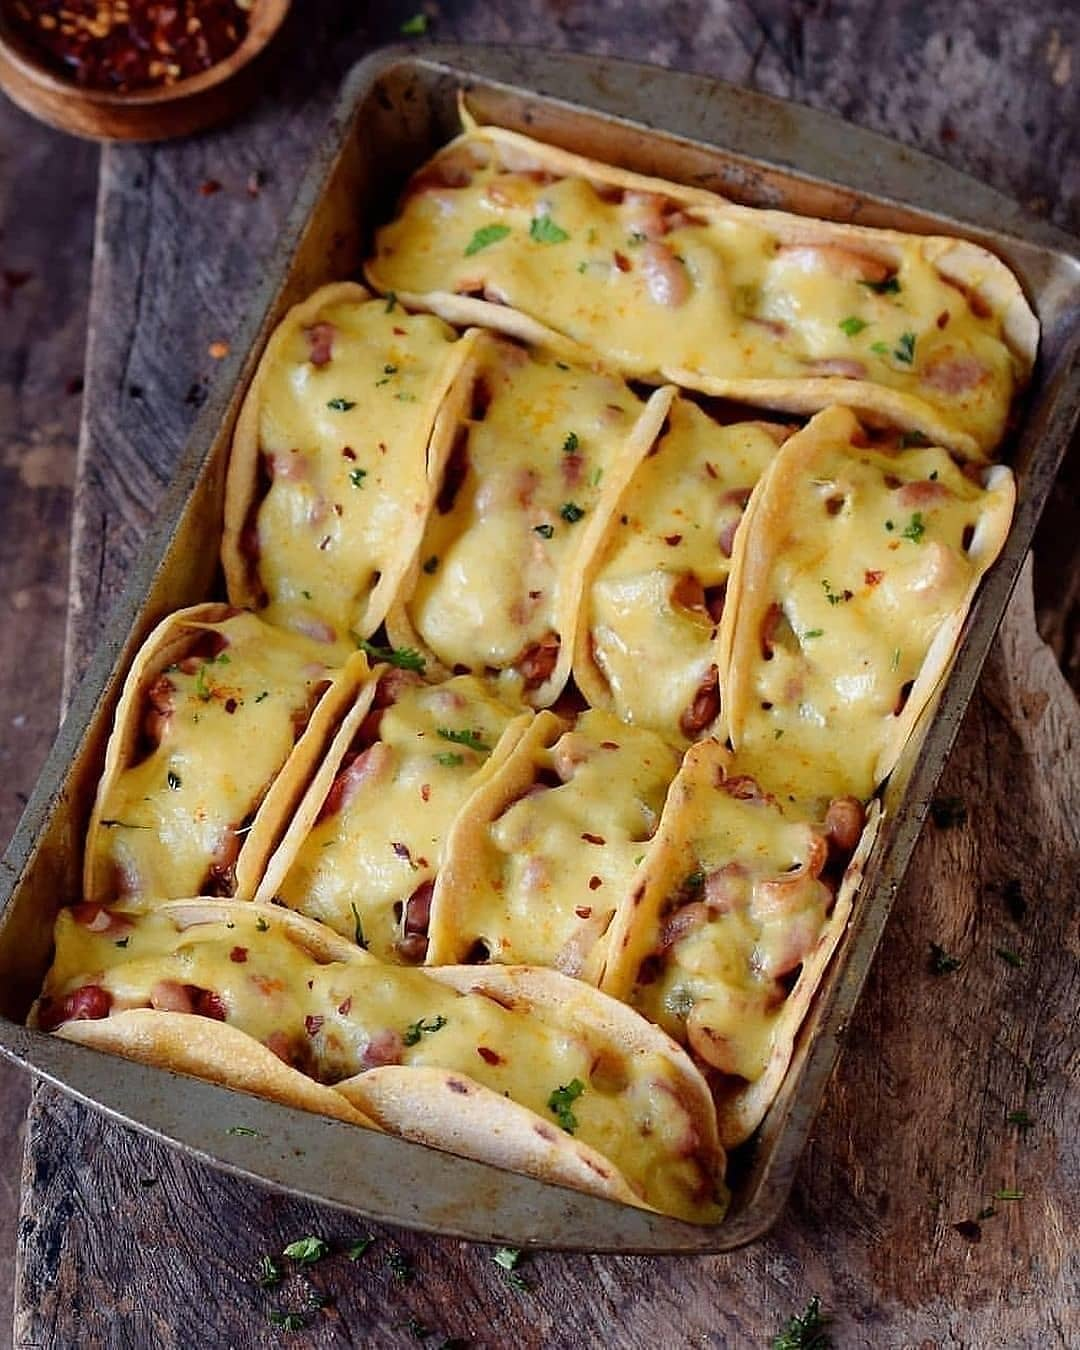 oven baked cheesy tacos for dinner by elavegan display image  2d5f66b9